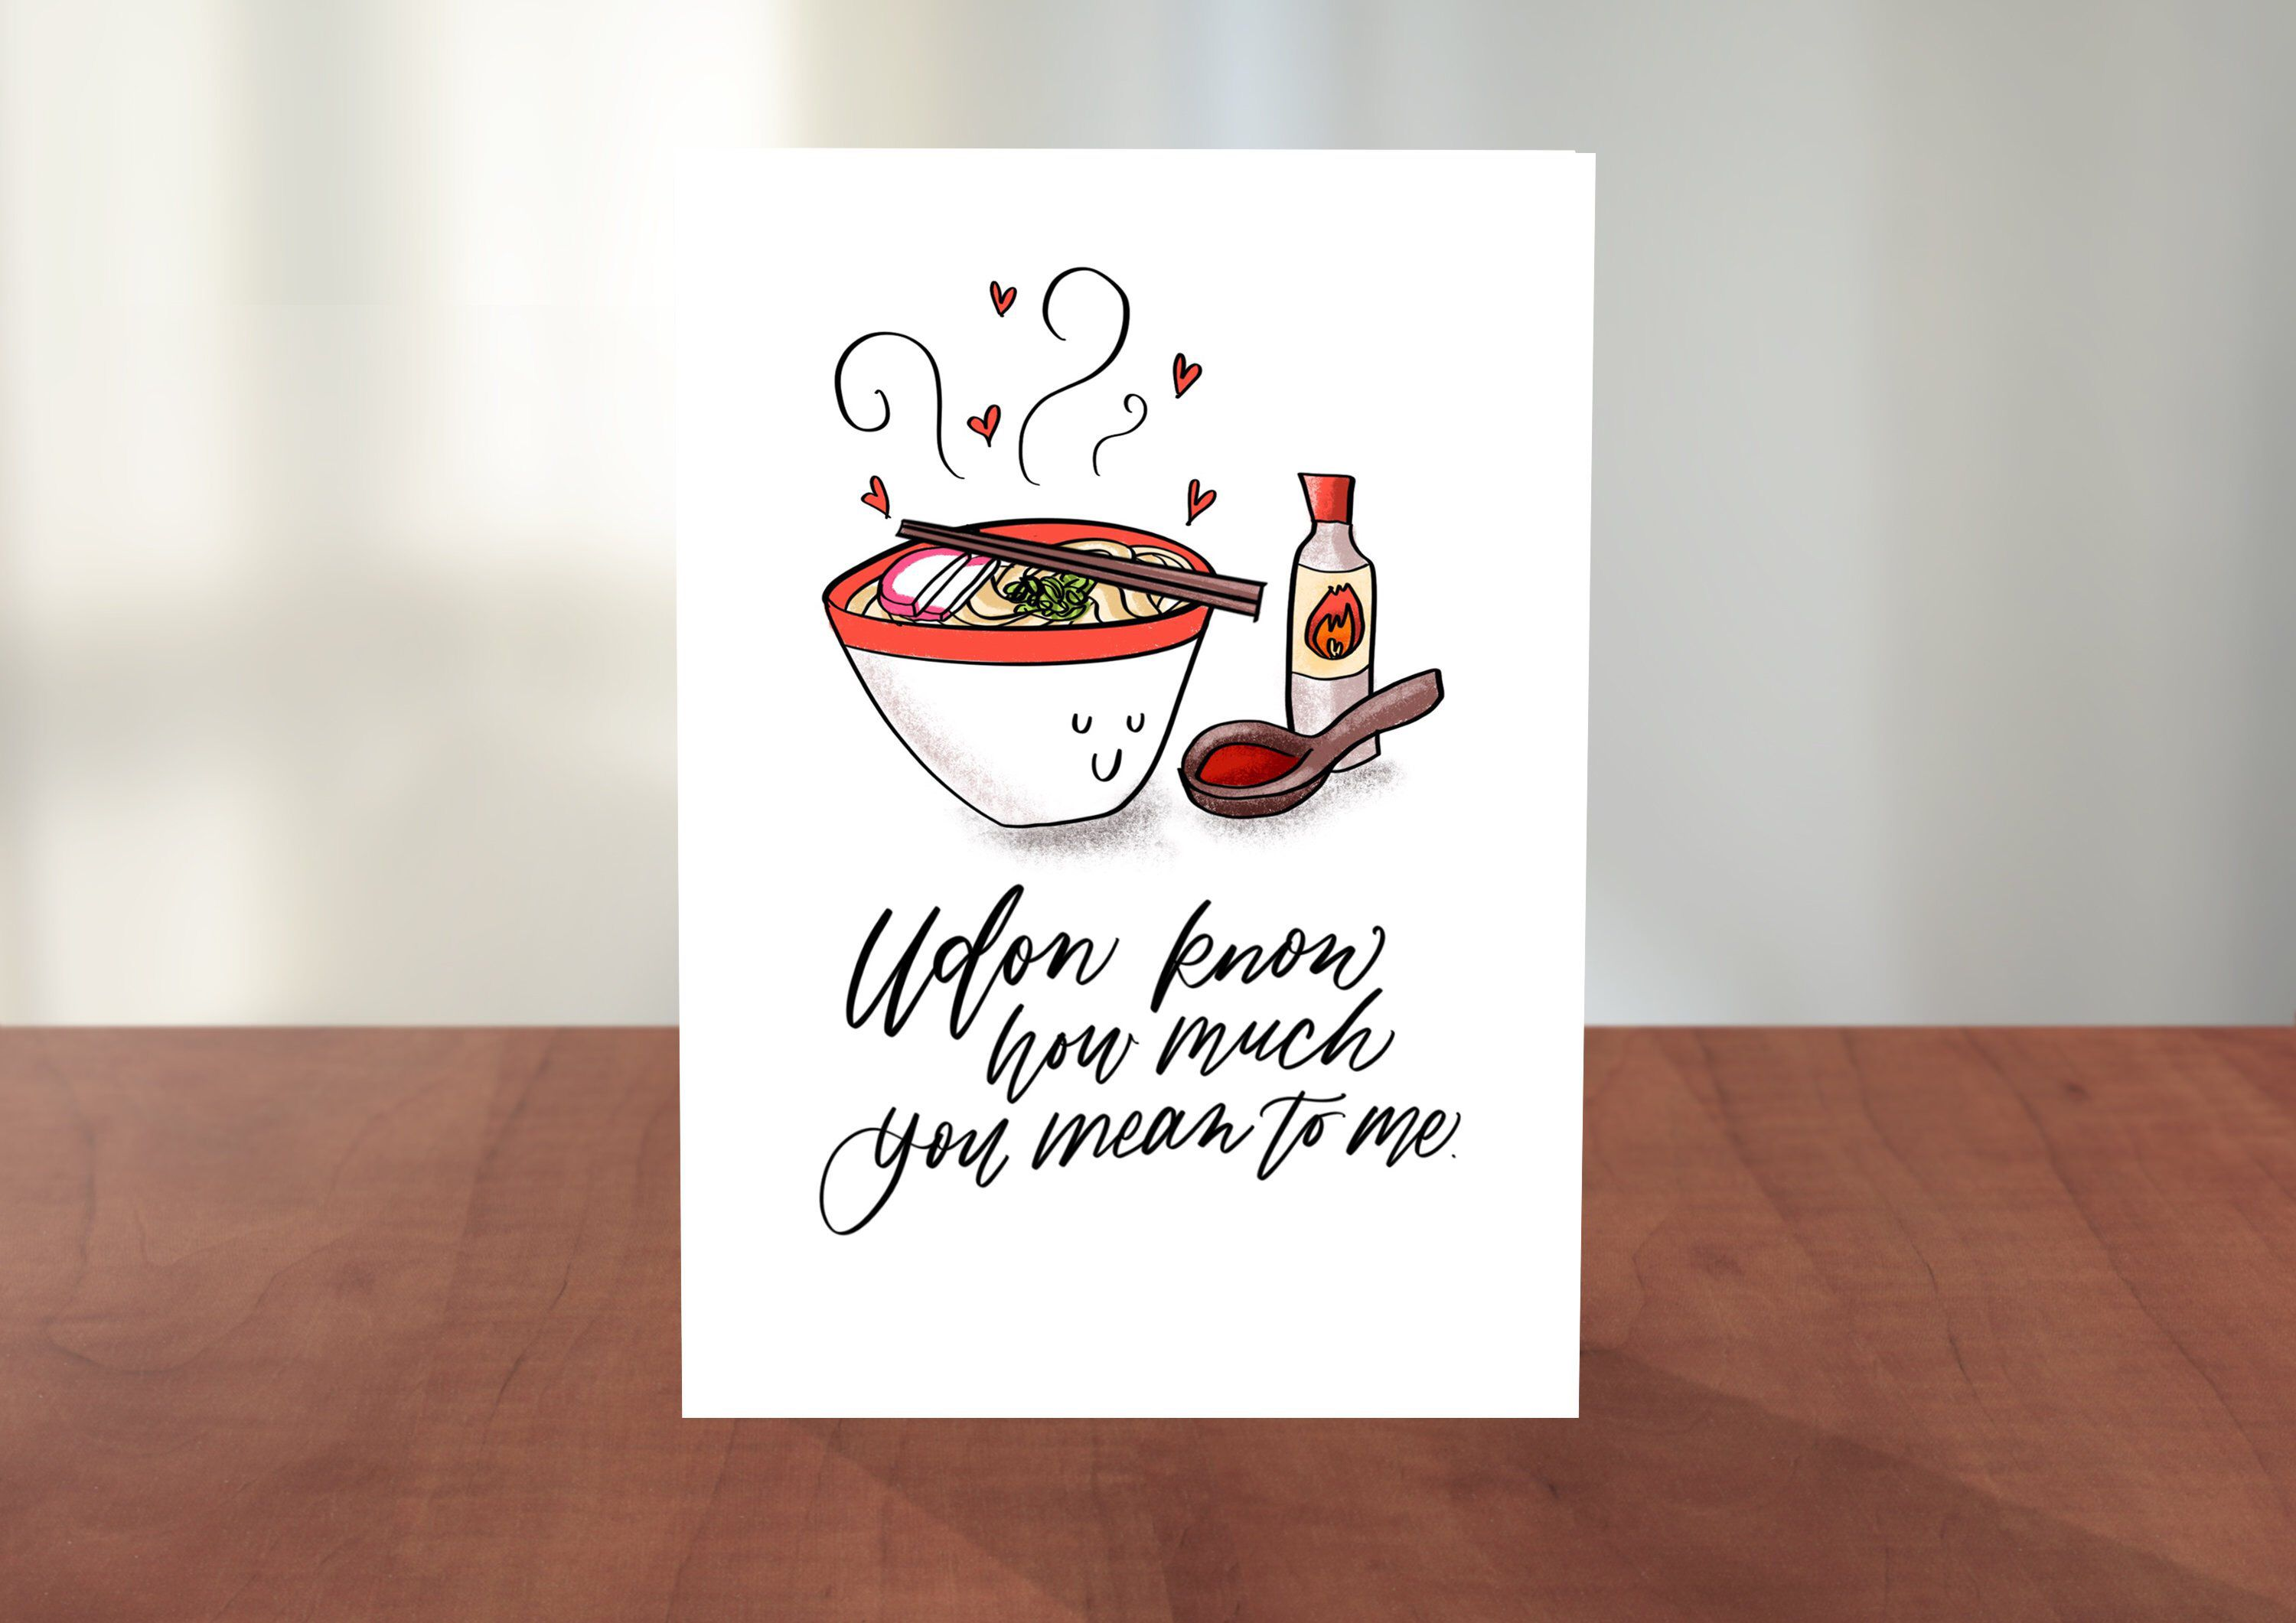 Asian food pun cards udon know how much you mean to me